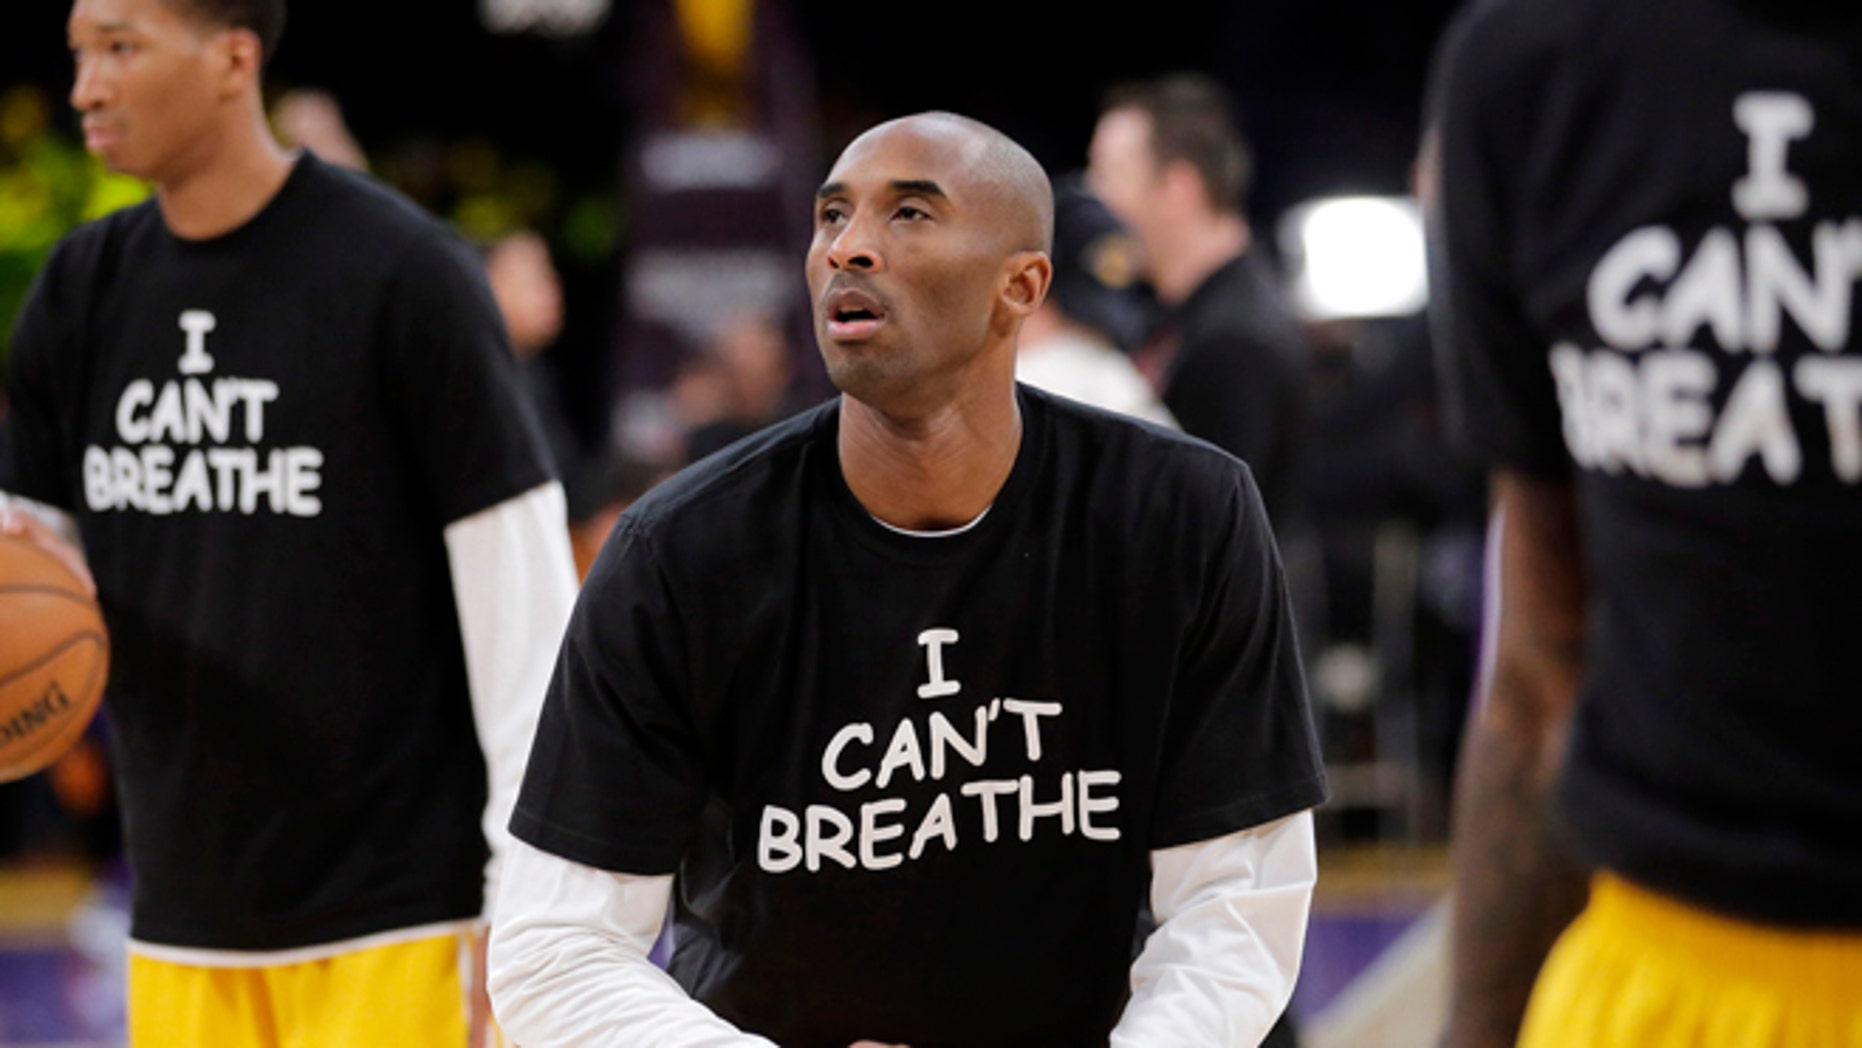 Dec. 9, 2014: Los Angeles Lakers' Kobe Bryant, center, warms up before an NBA basketball game against the Sacramento Kings in Los Angeles. An Illinois woman wants to trademark the phrase on T-shirts and hoodies.